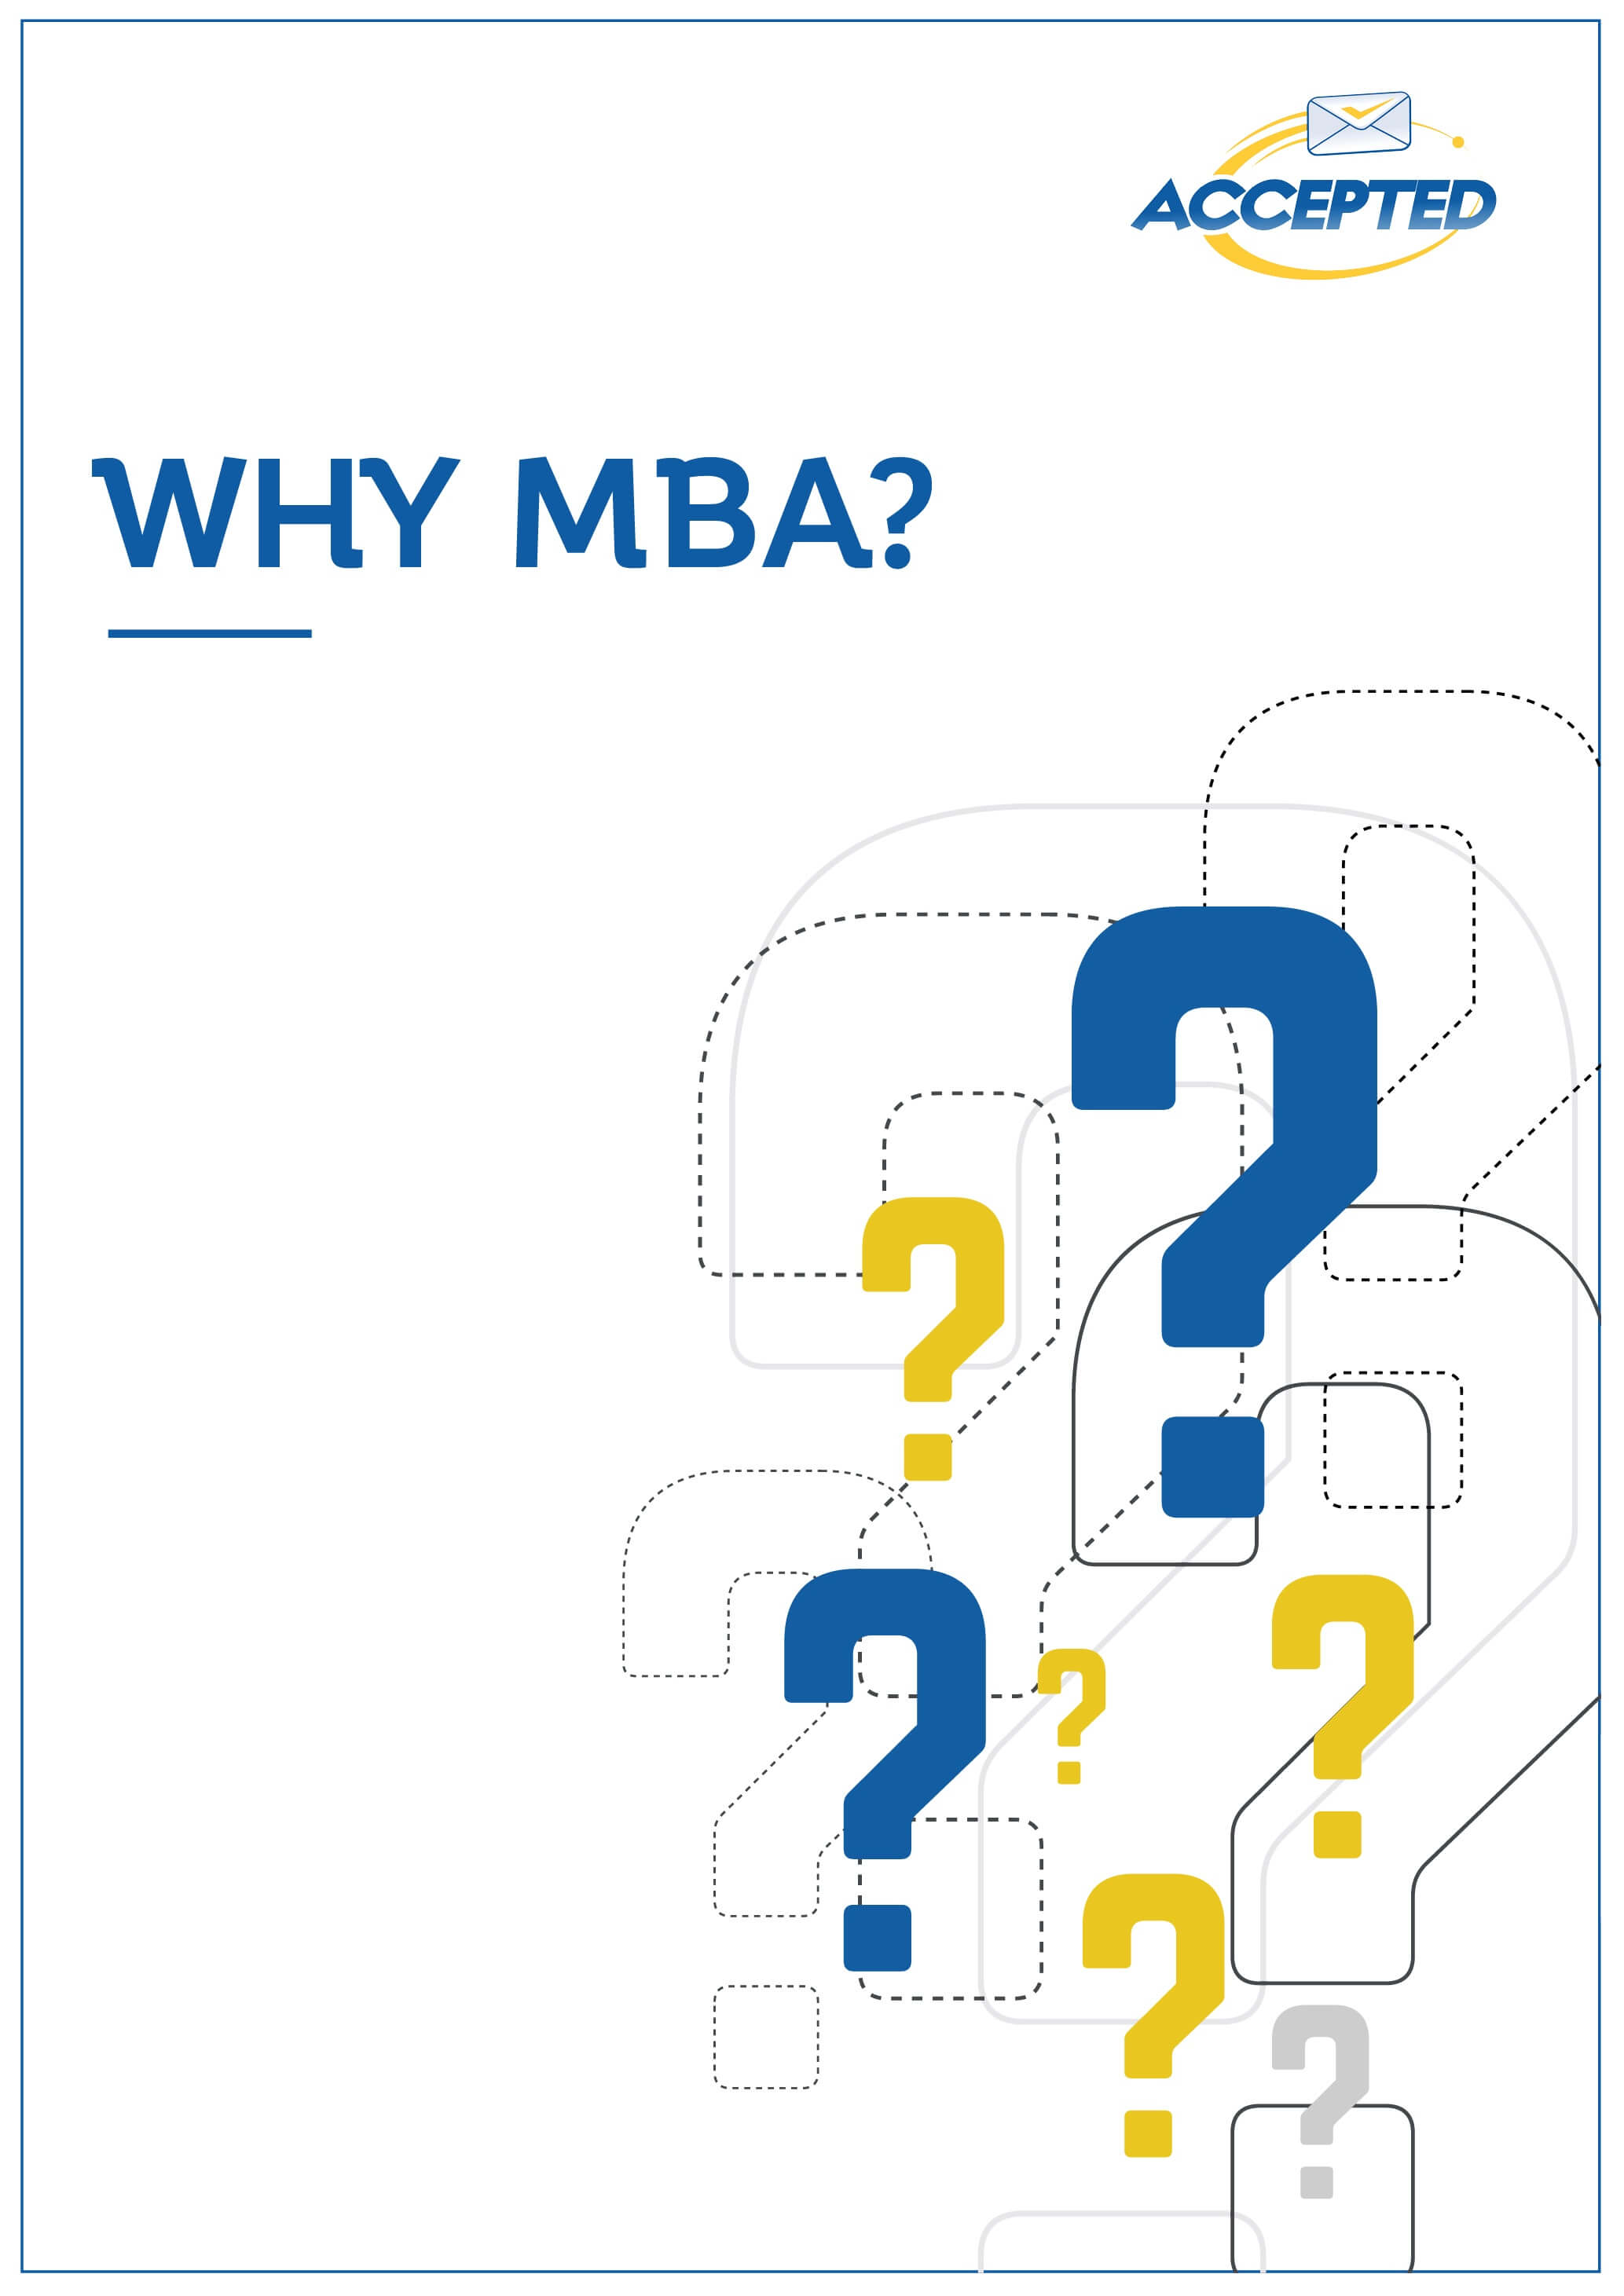 mba essay why mba Why mba this essay why mba and other 63,000+ term papers, college essay examples and free essays are available now on reviewessayscom autor: reviewessays.